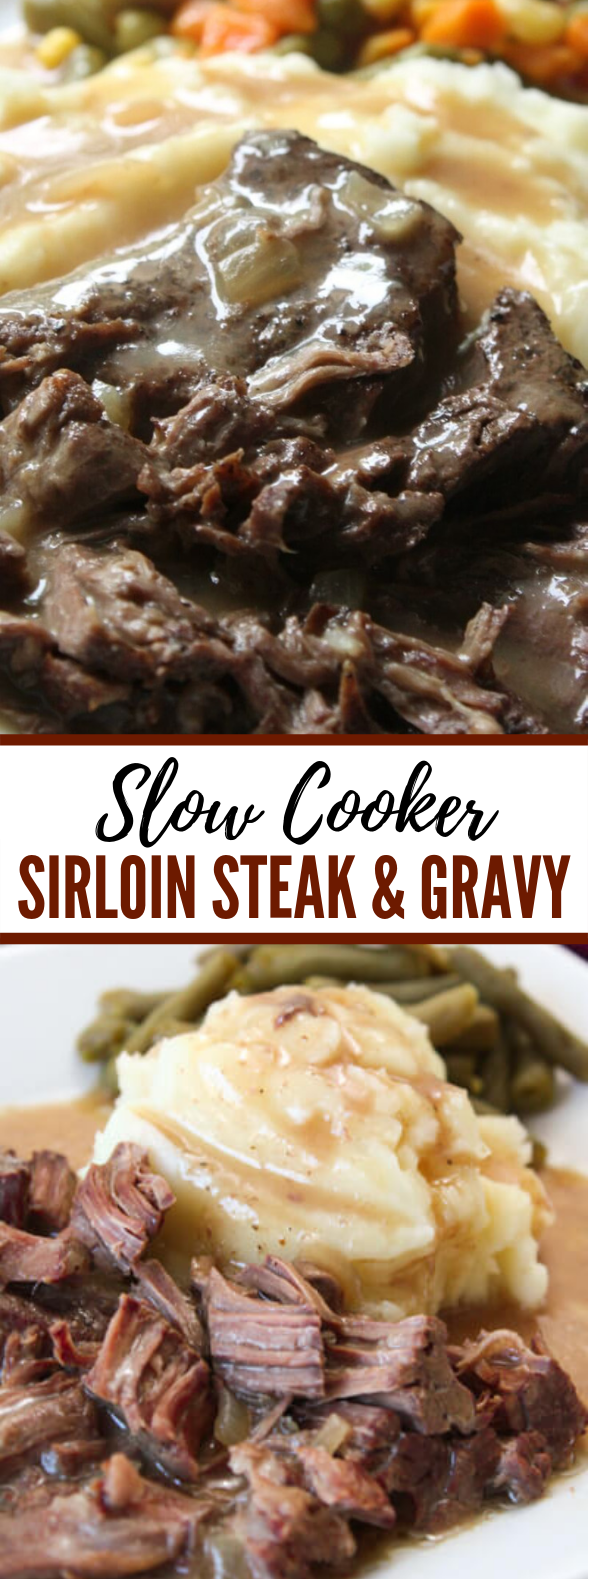 Slow Cooker Sirloin Steak and Gravy Recipe #dinner #comfortfood #slowcooker #crockpot #maindish #steak